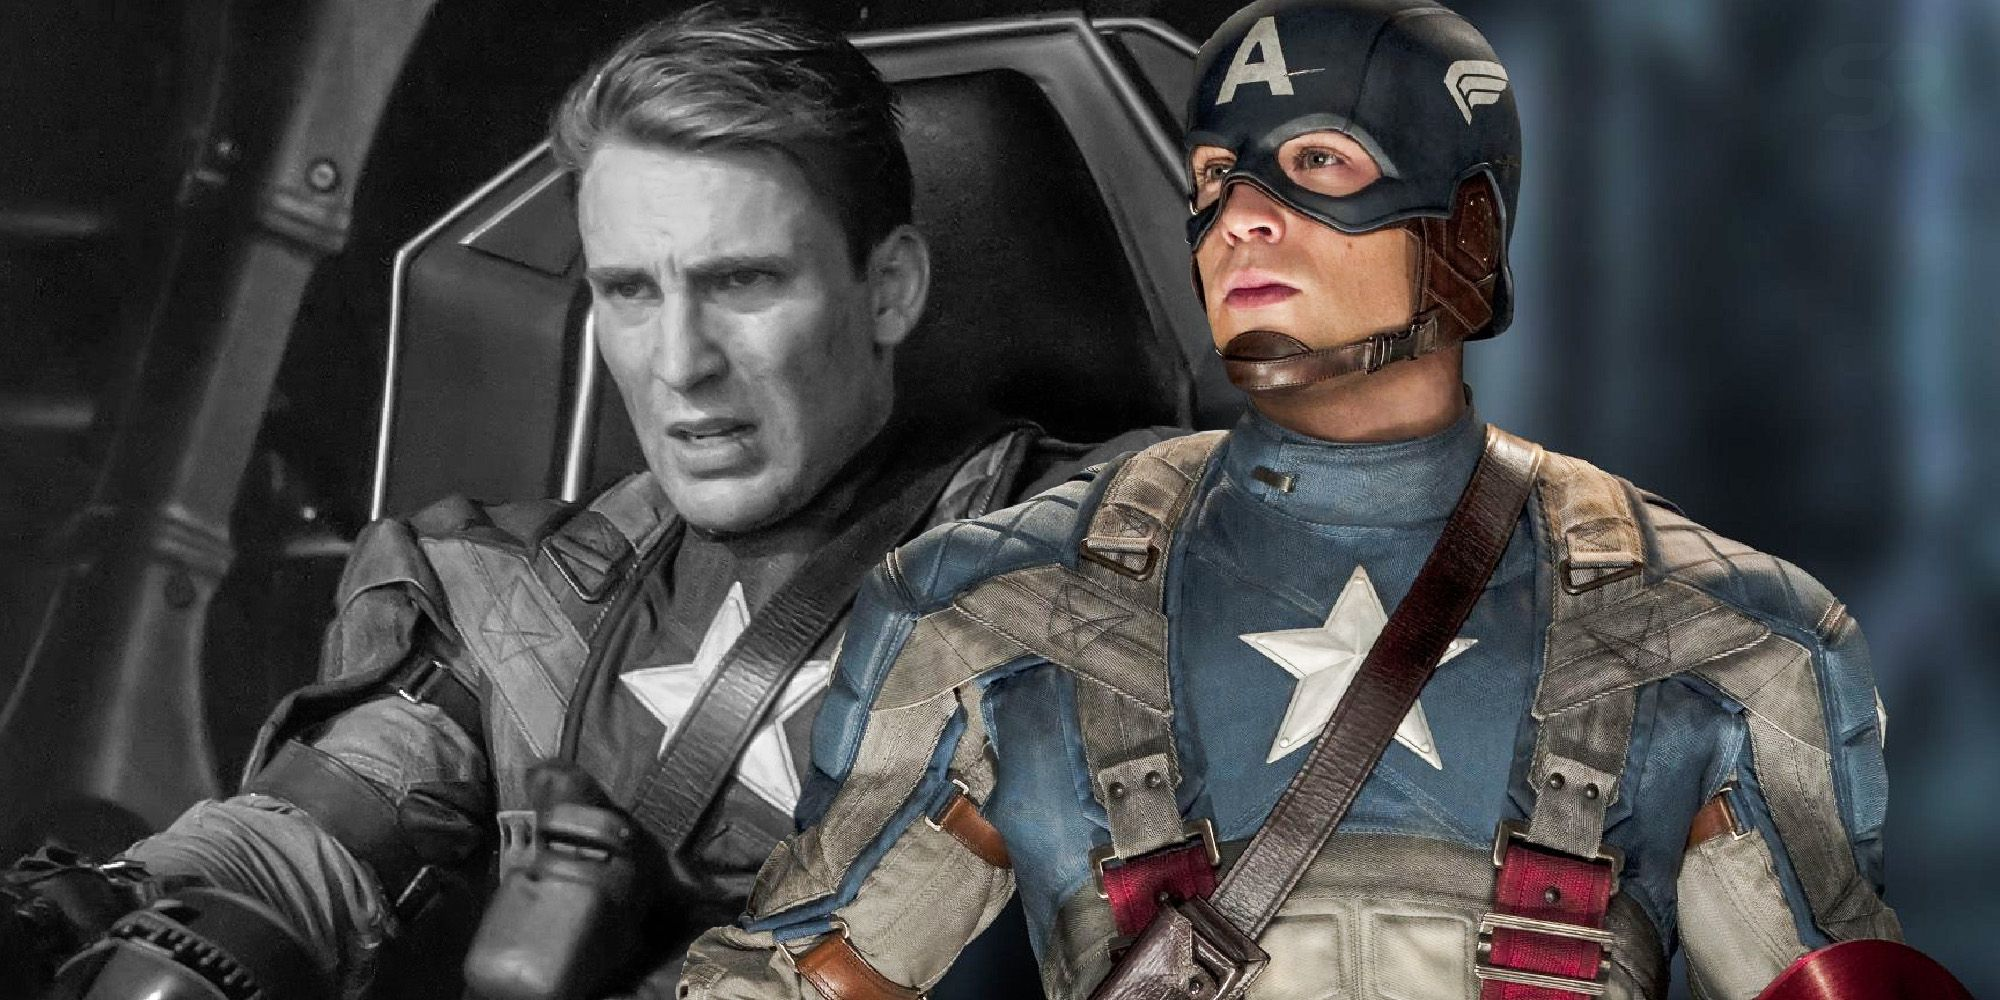 Captain America: Why Steve Rogers Crashed The Plane In The First Avenger